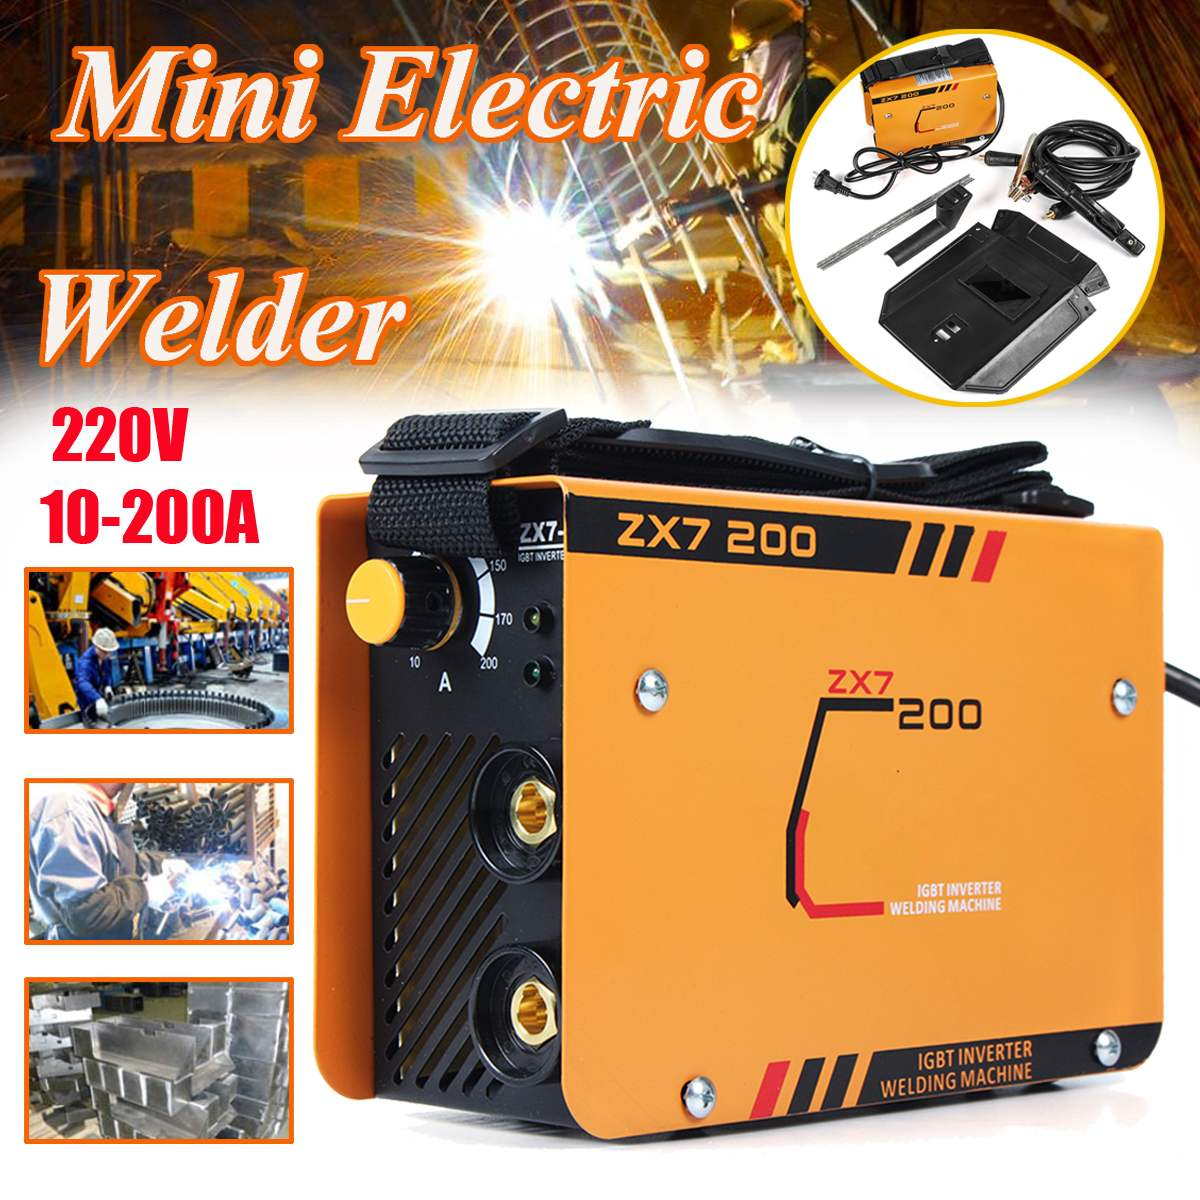 220V 10-200A Mini Electric Welding Machine ZX7-200MINI Arc Welder 2.5-3.2mm for Soldering and Electric Working Adjustable new high quality welding mma welder igbt zx7 200 dc inverter welding machine manual electric welding machine